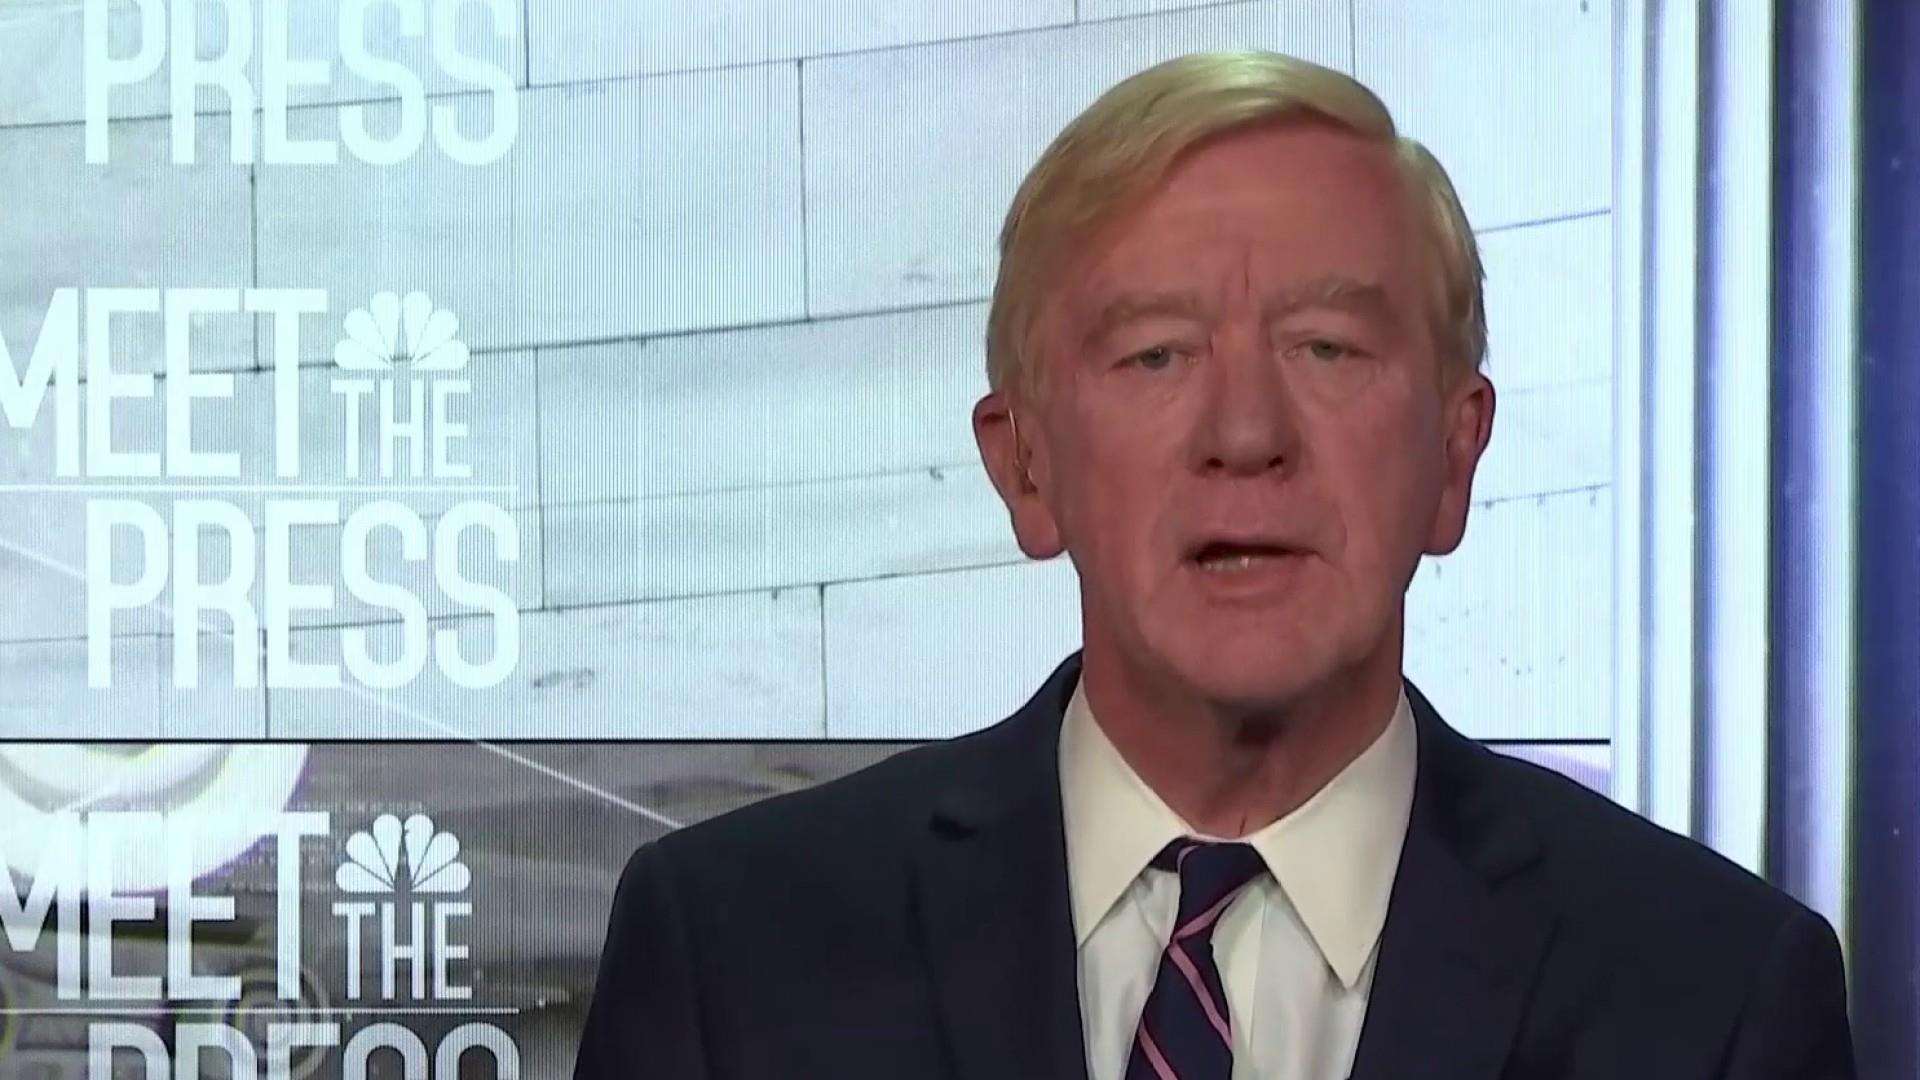 Weld: 'Thrilled' about new GOP challengers to President Trump